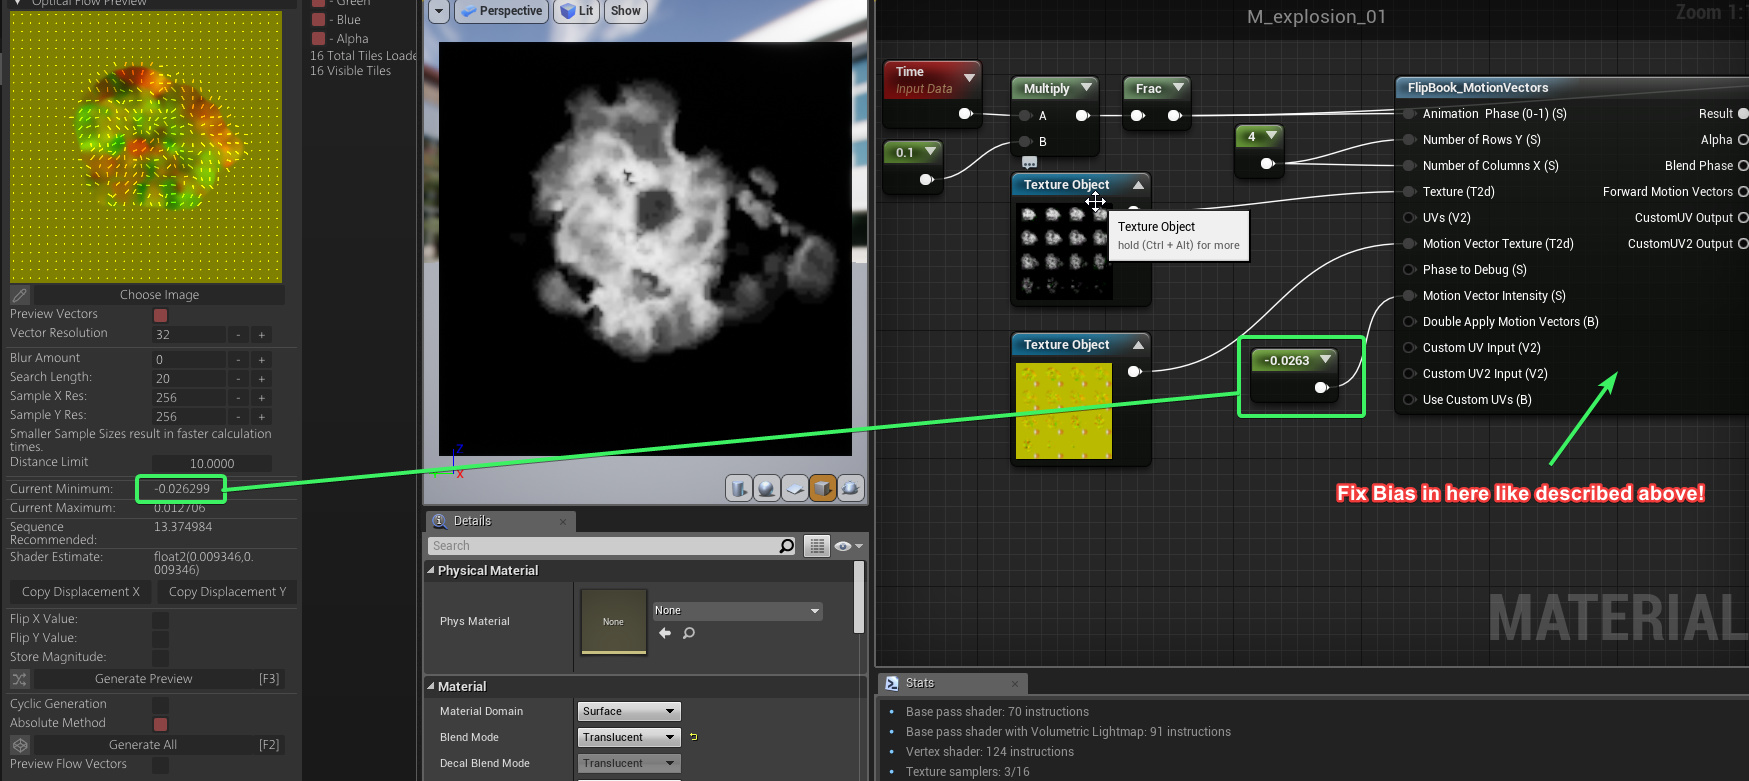 UE4's <Flip Book Motion Vector> Material Function works well